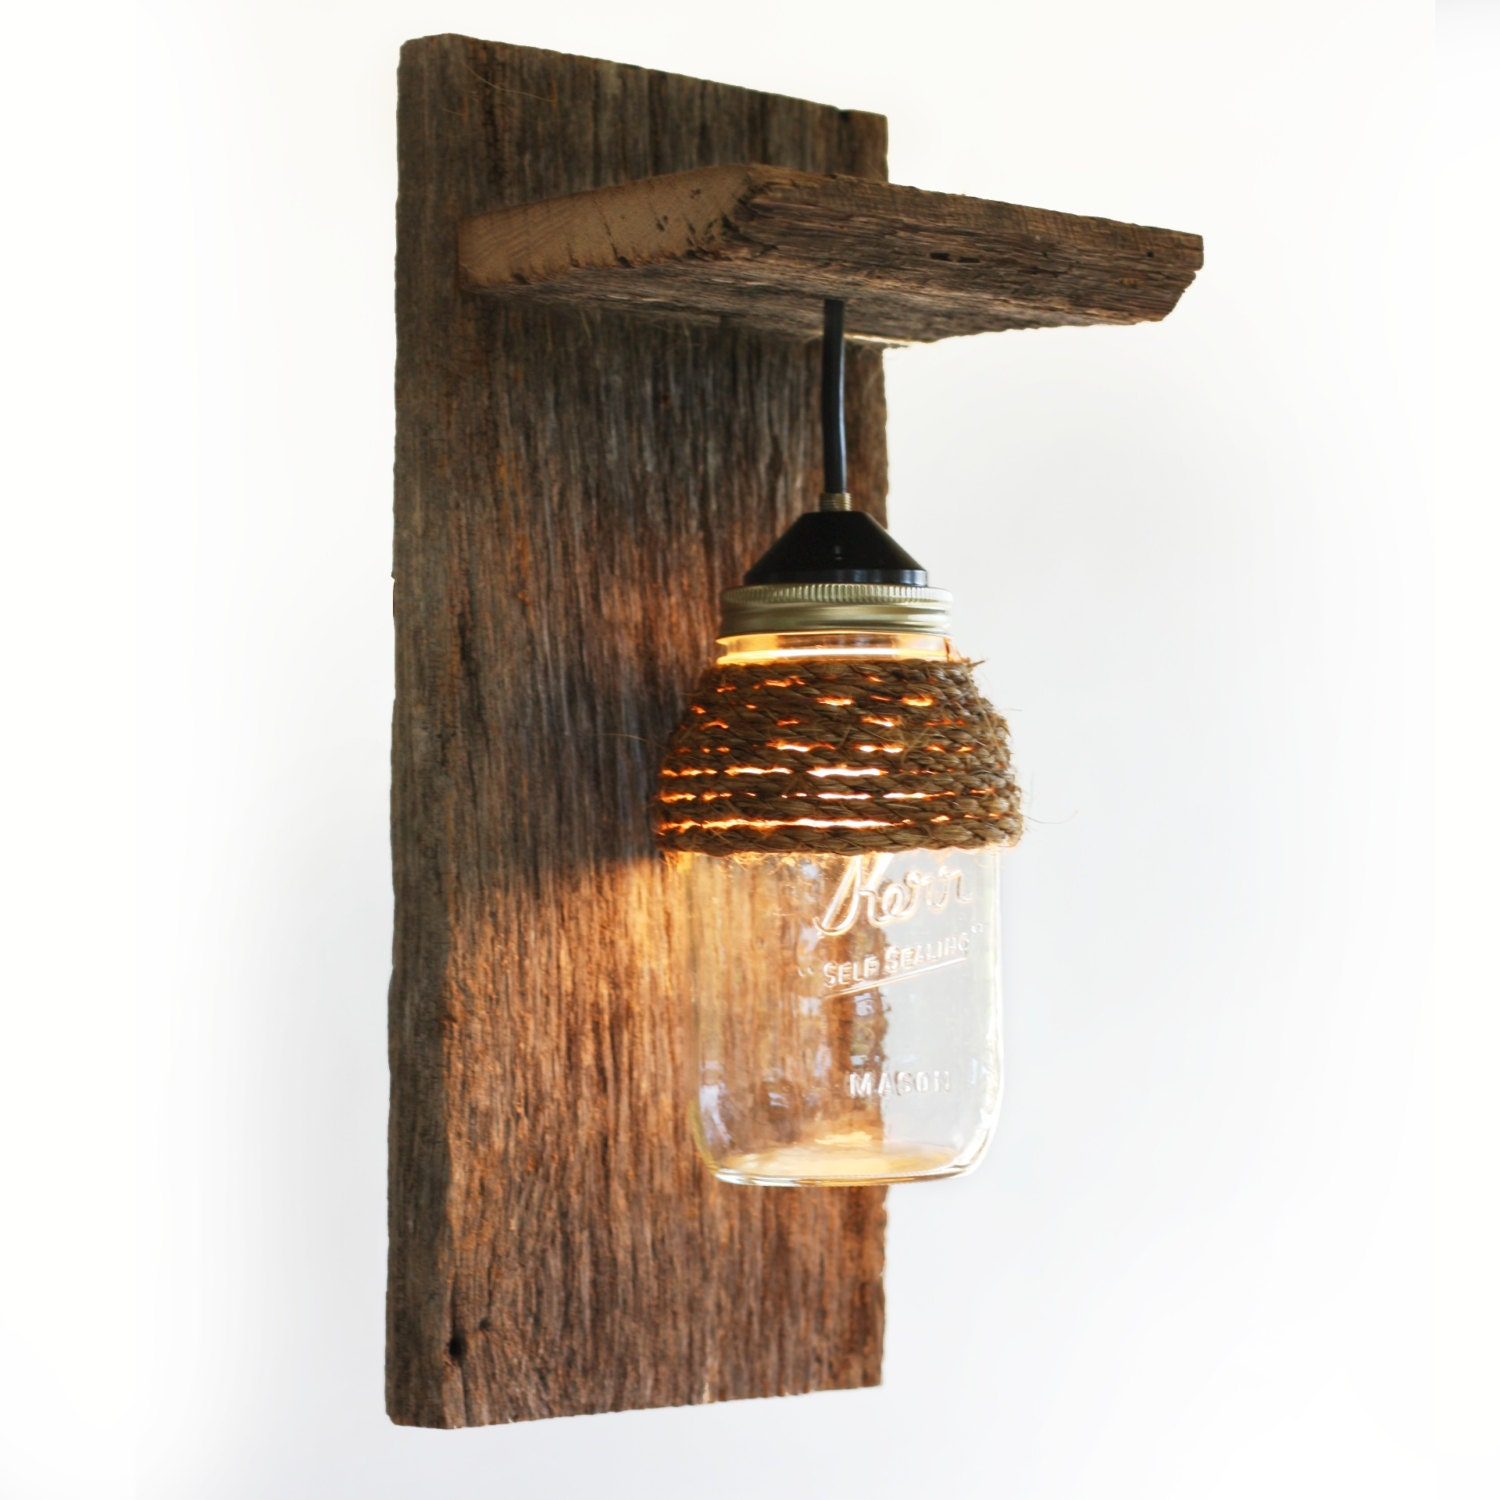 mason jar light wall fixture barnwood wall by grindstonedesign. Black Bedroom Furniture Sets. Home Design Ideas